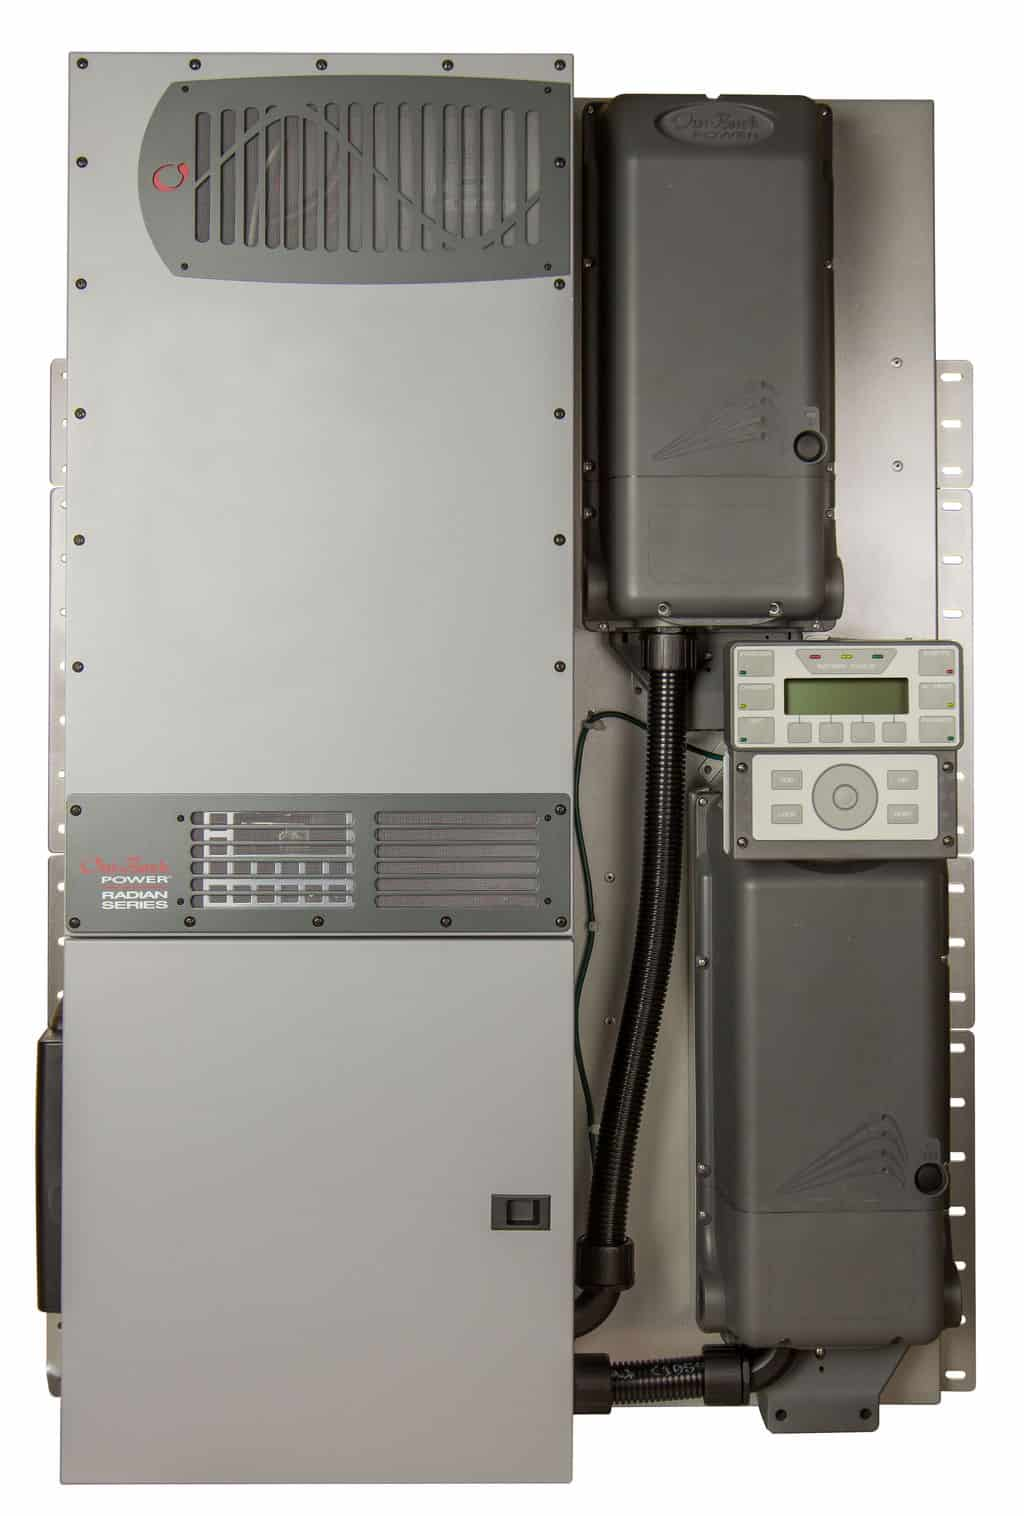 OutBack Power Systems: Outback, FLEXpower Radian, GS8048A-01, 8.0kW, 120/240Vac, Prewired GSLC, with 120/240 AC bypass.